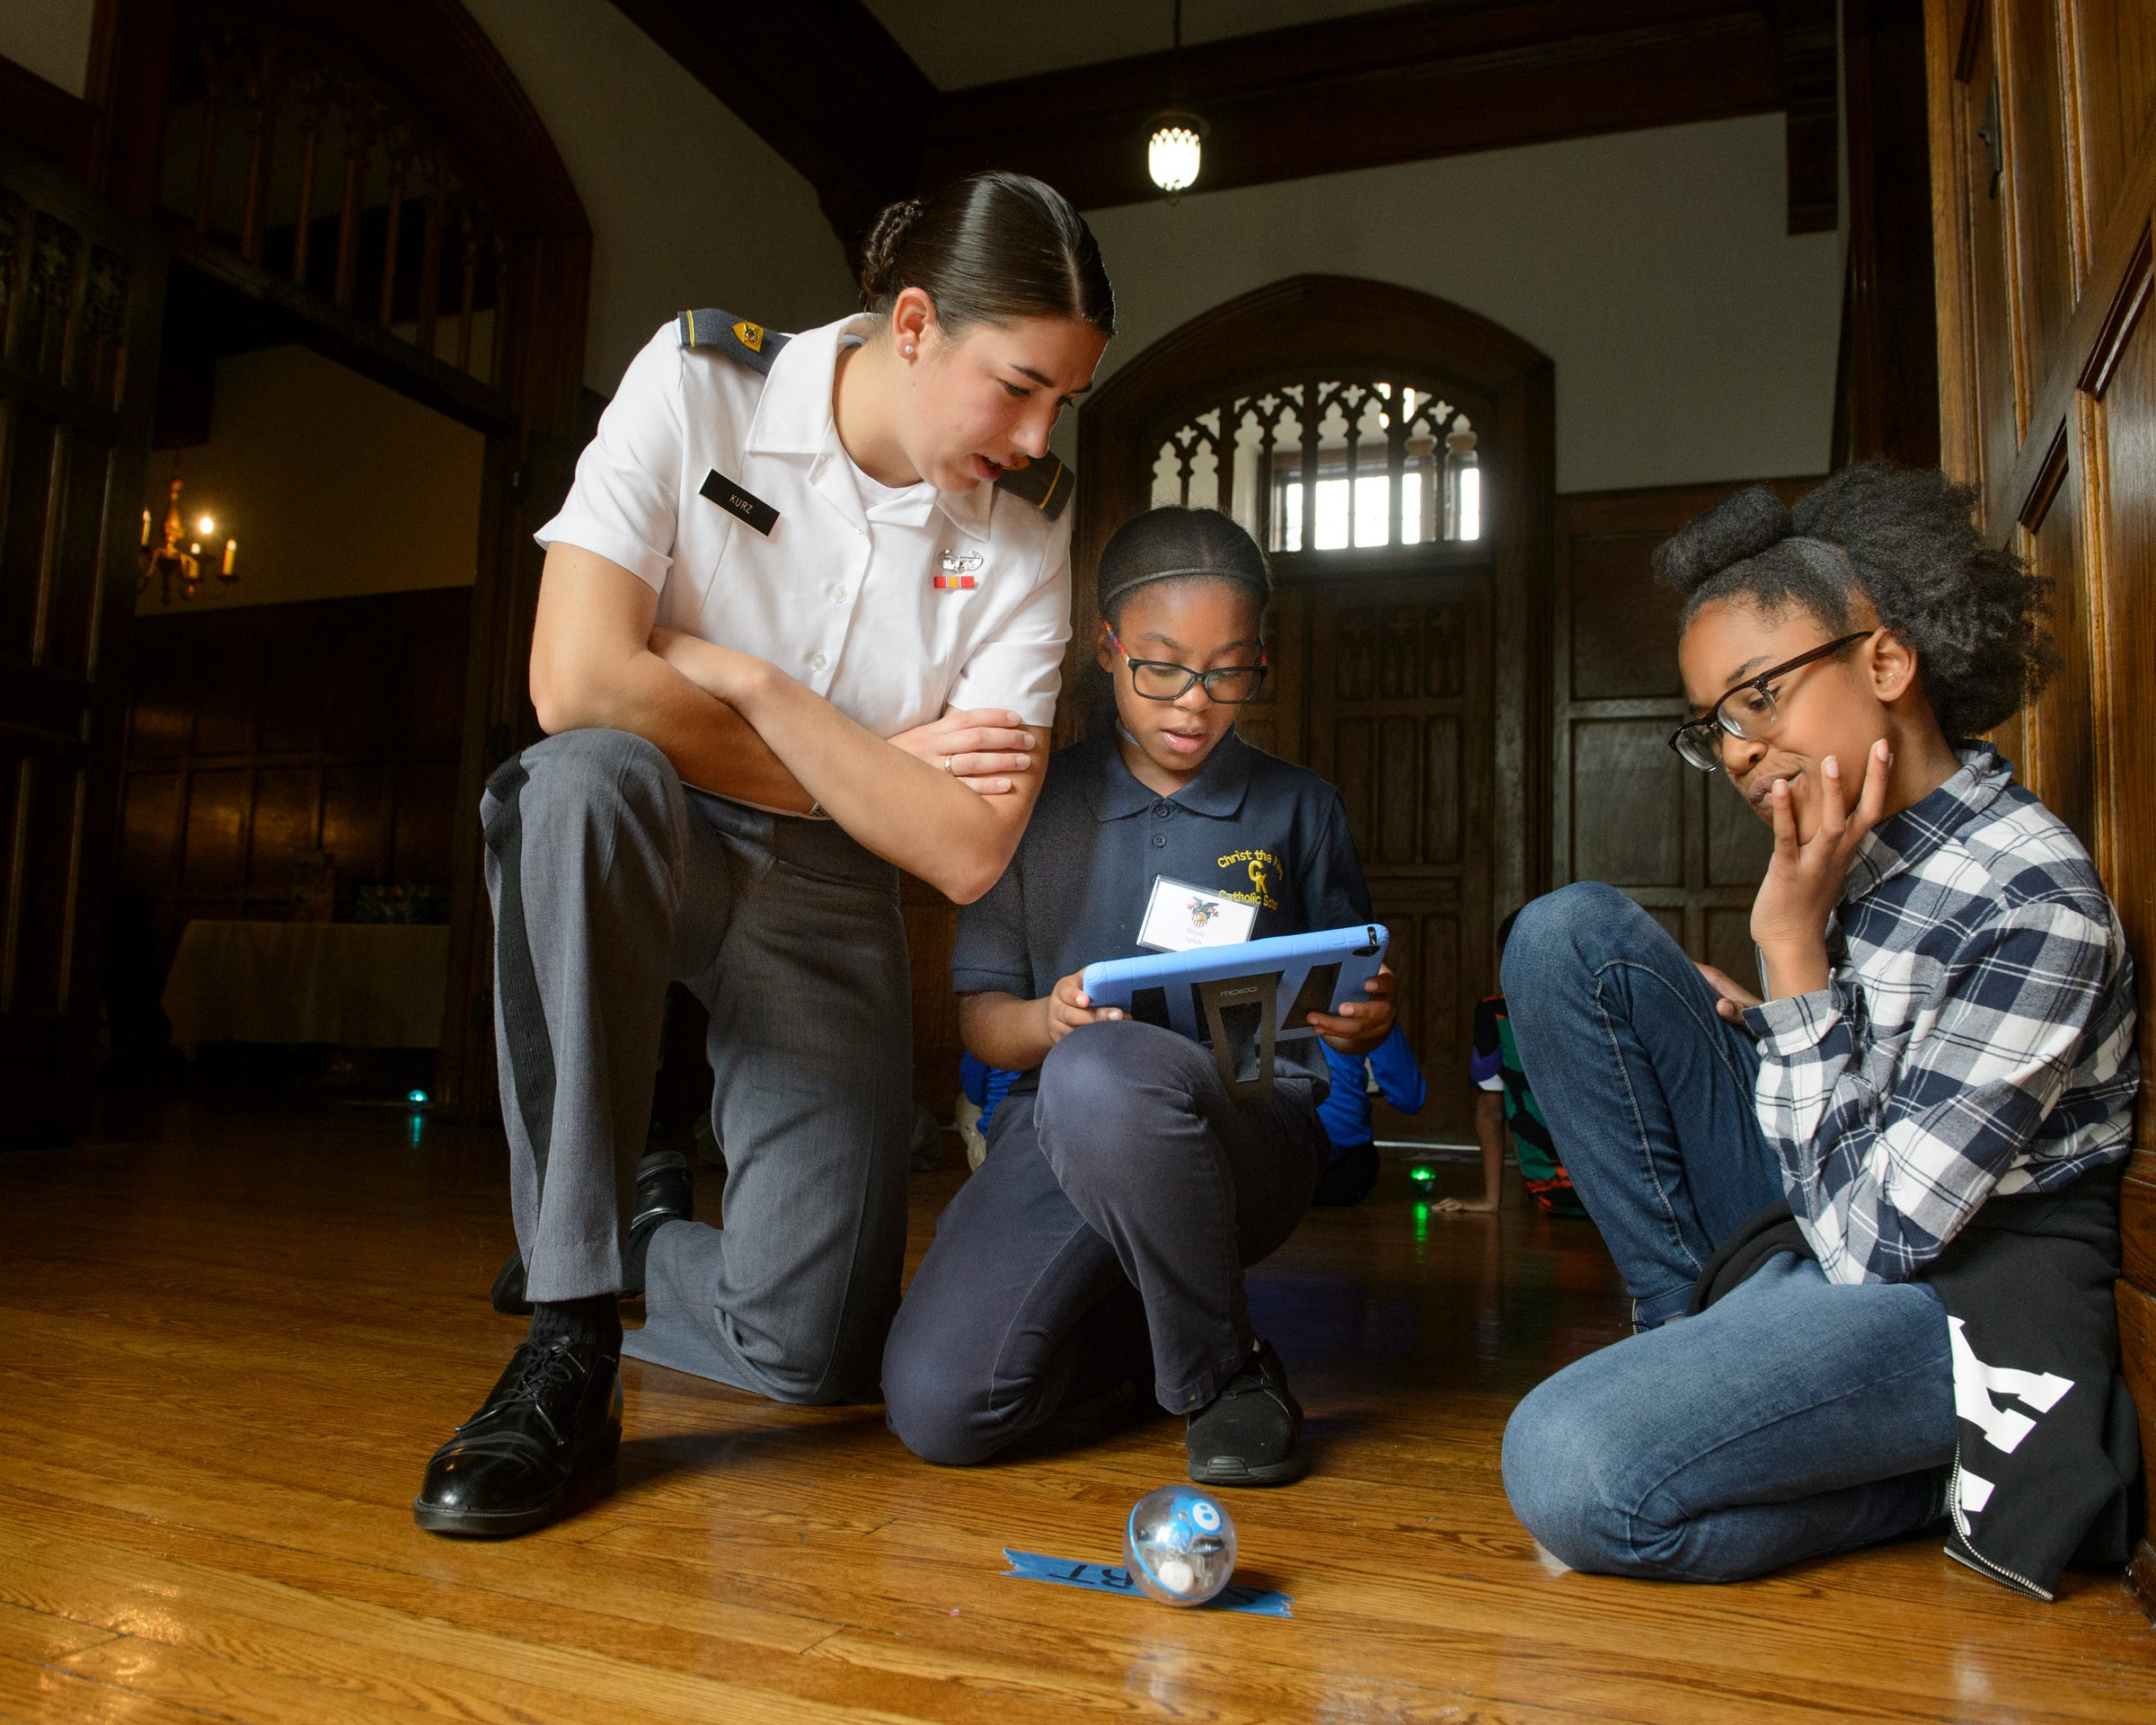 West Point workshop to bring science, leadership and ethics lessons to Detroit students